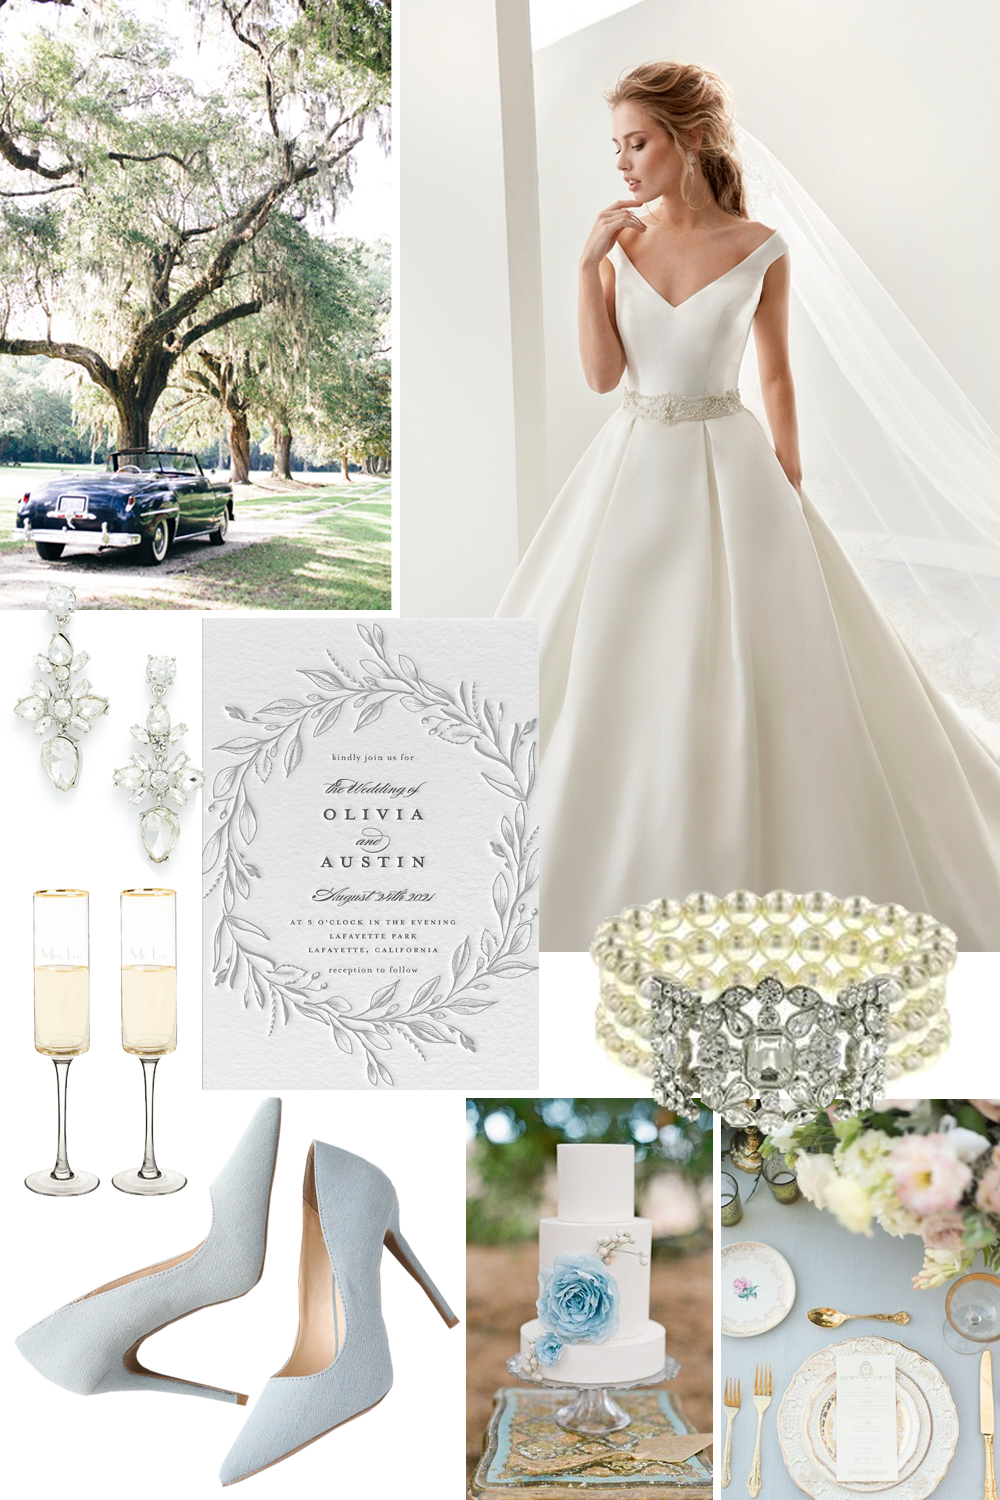 belfair-plantation-wedding-planner-savannah-wedding-planner-ivory-and-beau-savannah-florist-southern-wedding-inspiration-savannah-wedding-planner-event-designer-luxury-southern-wedding-planner-event-designer-southern-weddings.png